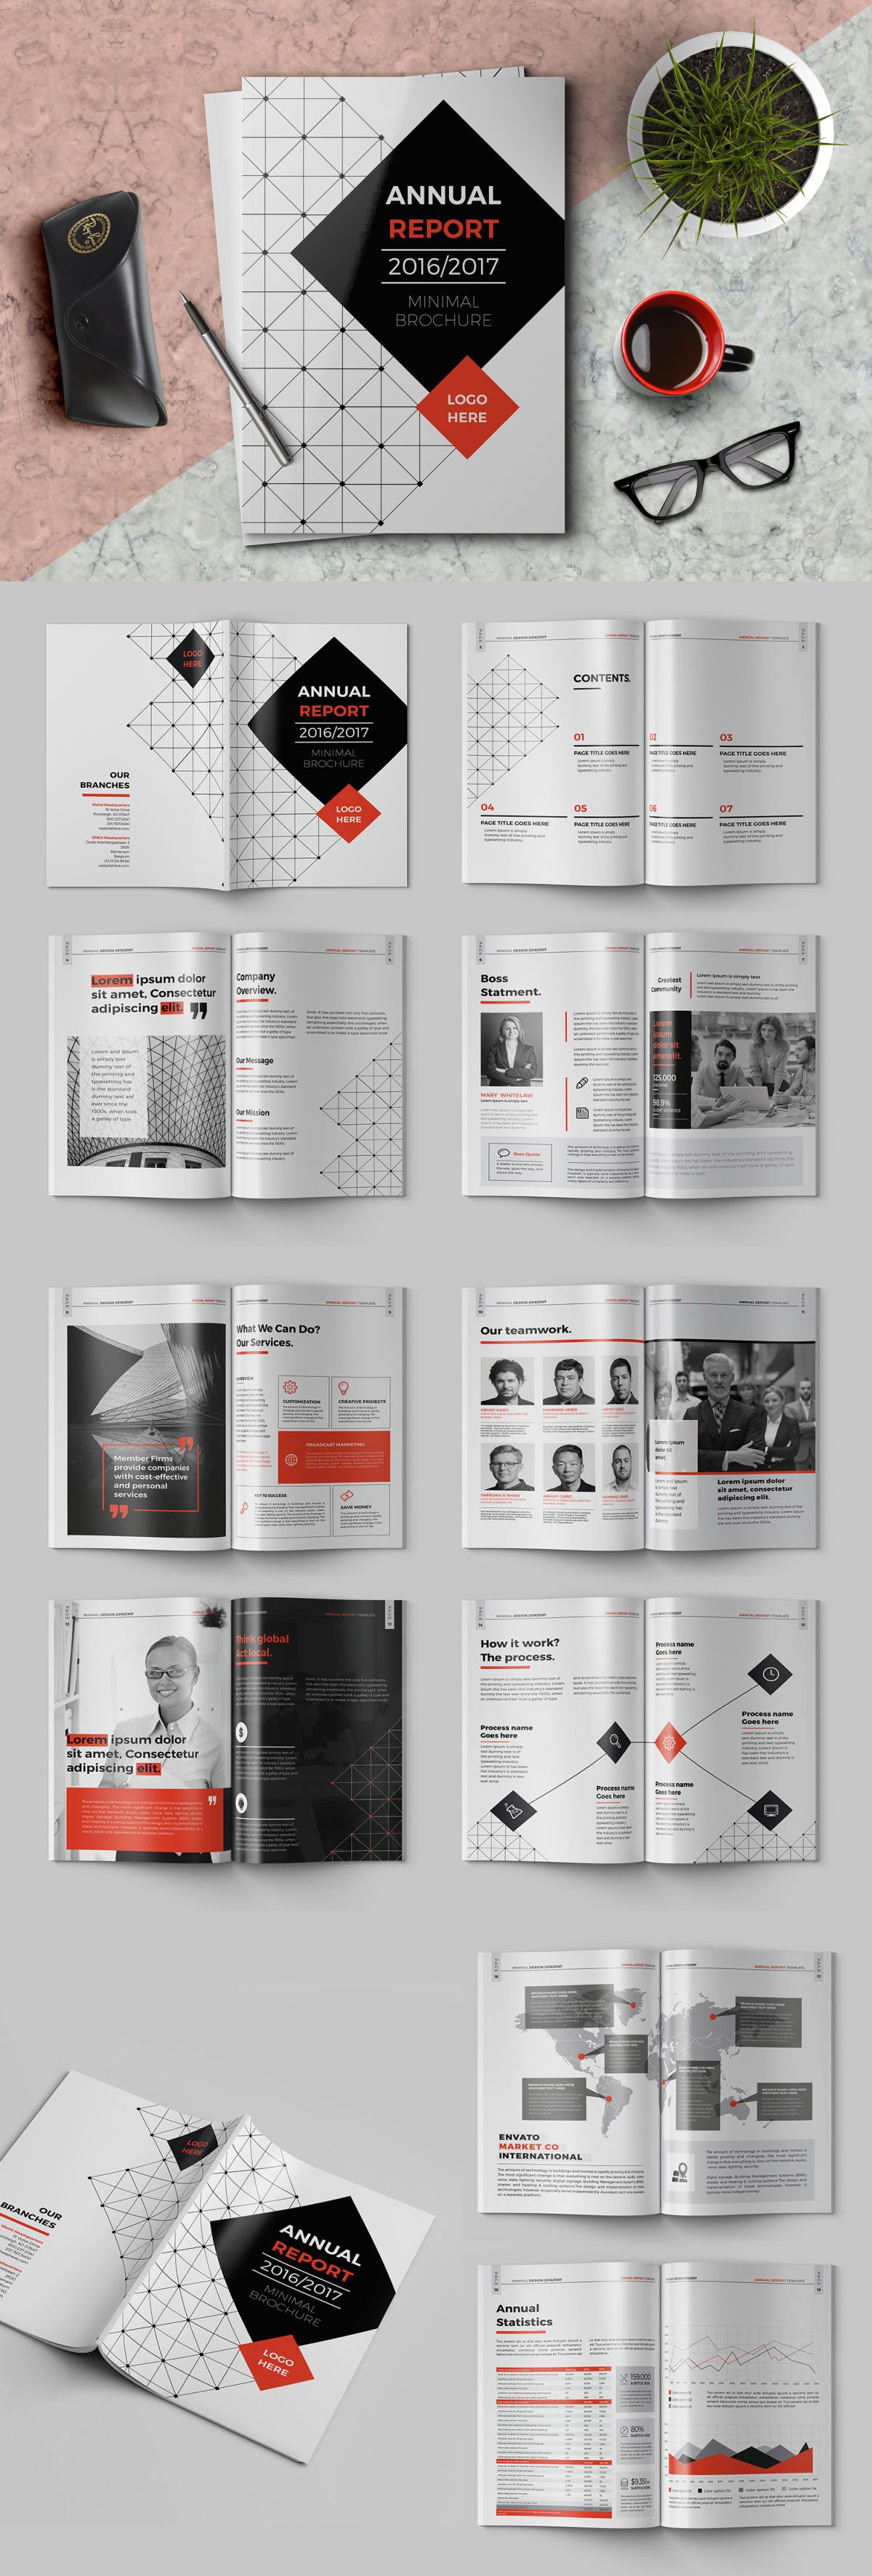 Elegant Annual Report Brochure Template InDesign INDD - 20 Pages, A4 ...